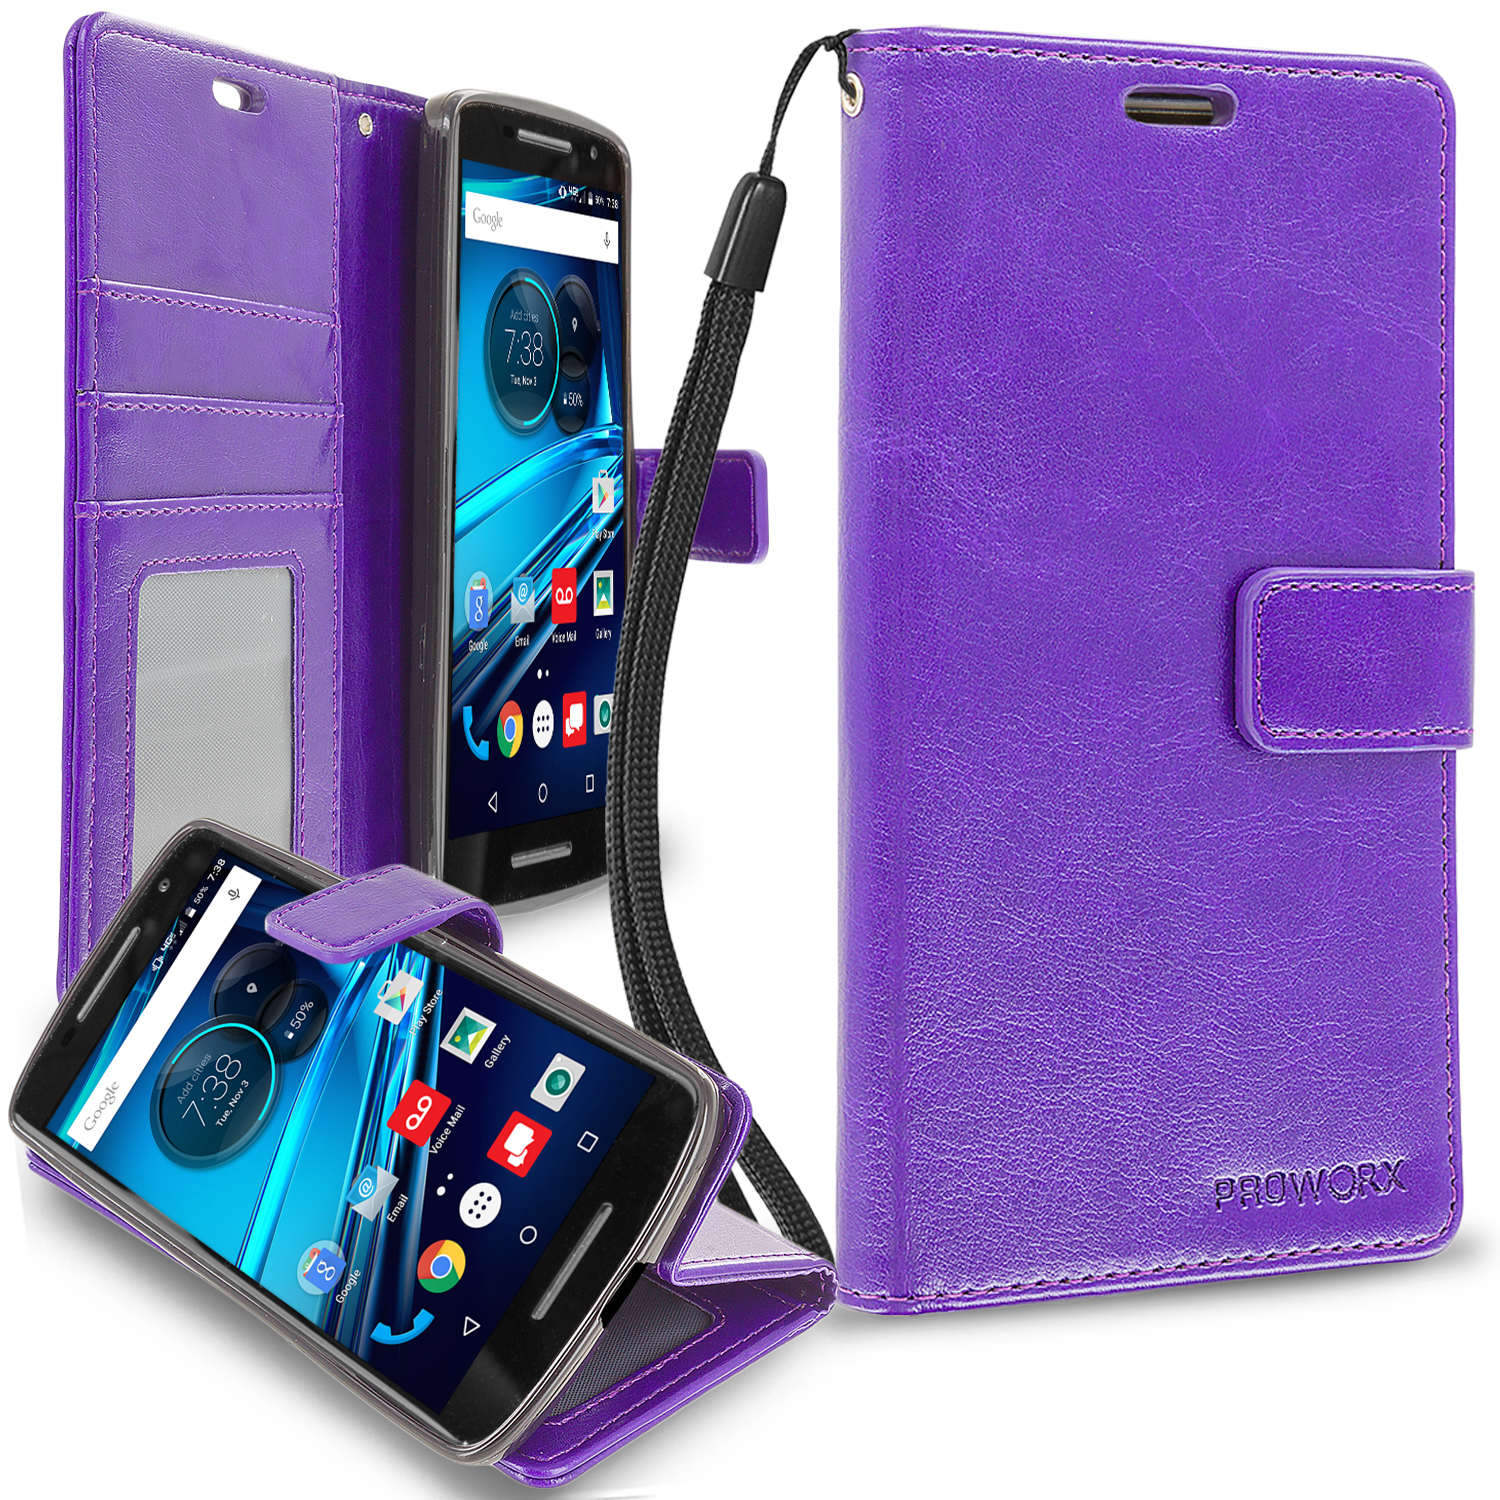 Motorola Droid Maxx 2 XT1565 Purple ProWorx Wallet Case Luxury PU Leather Case Cover With Card Slots & Stand